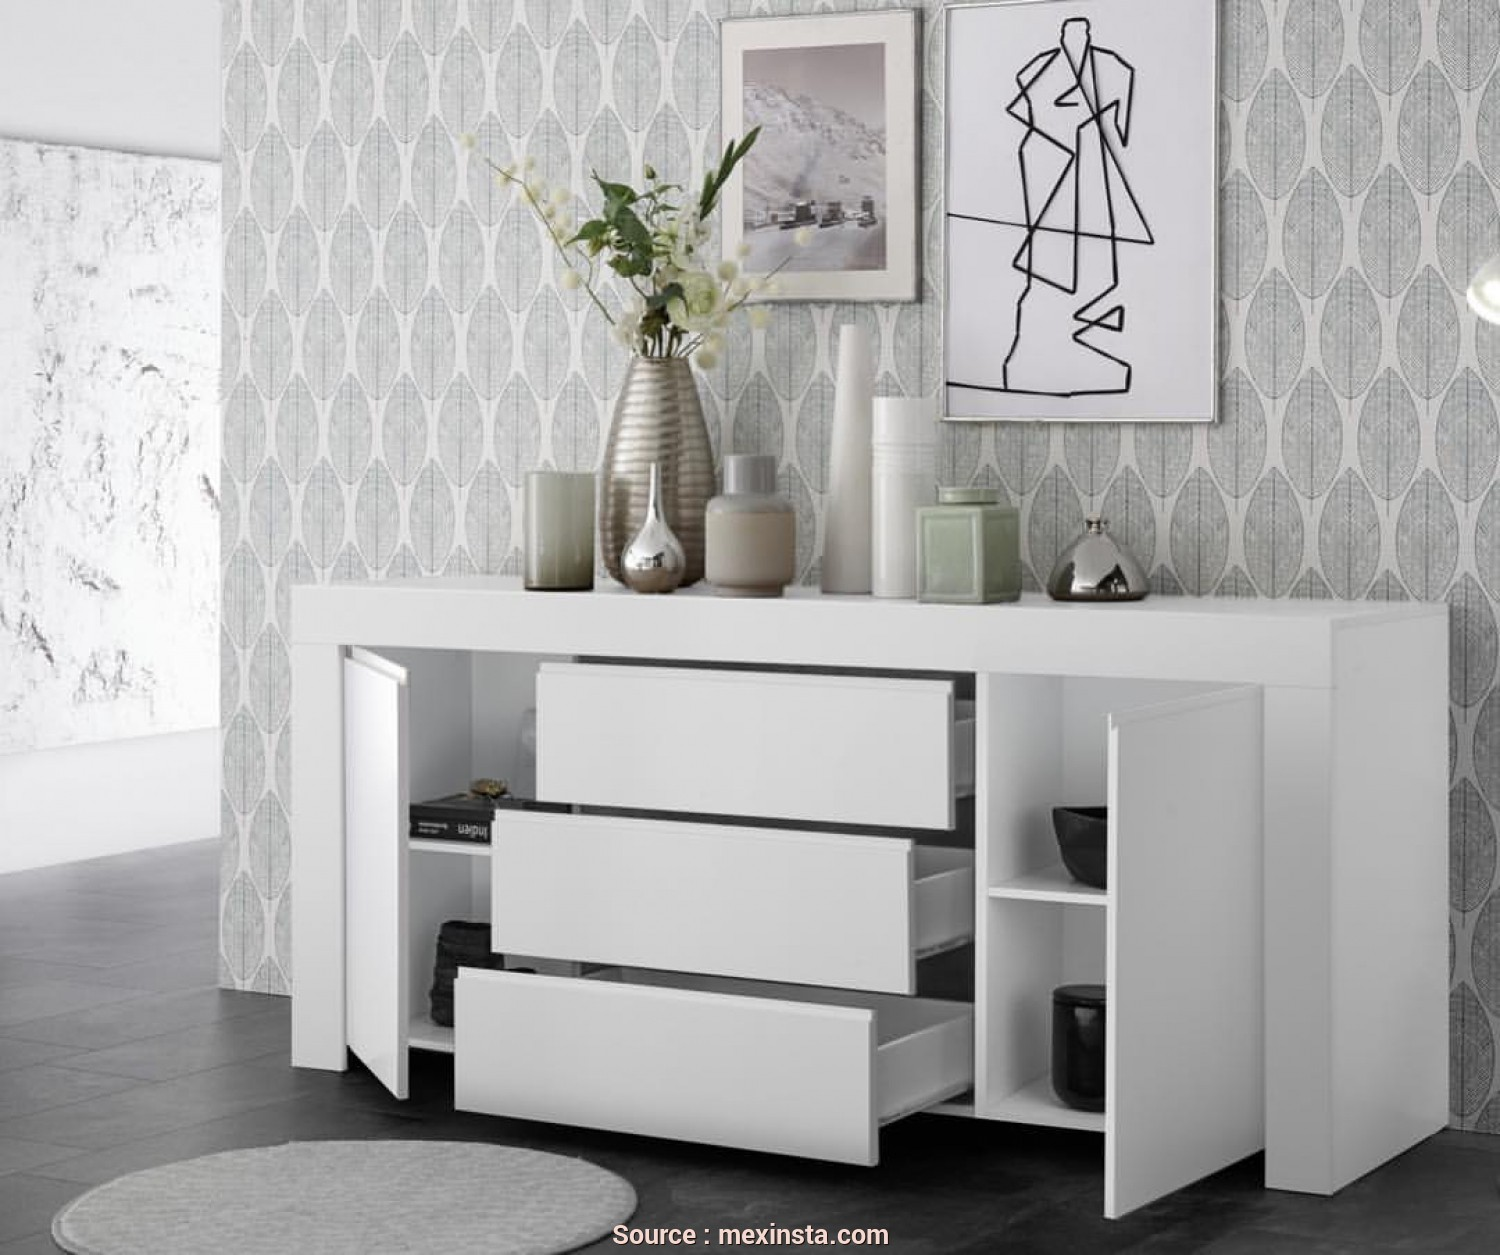 Copridivano Poltronesofà, Maestoso Introducing Firenze From Andrew Piggott Contemporary Furniture. Clean Lines To Enhance Modern Spaces